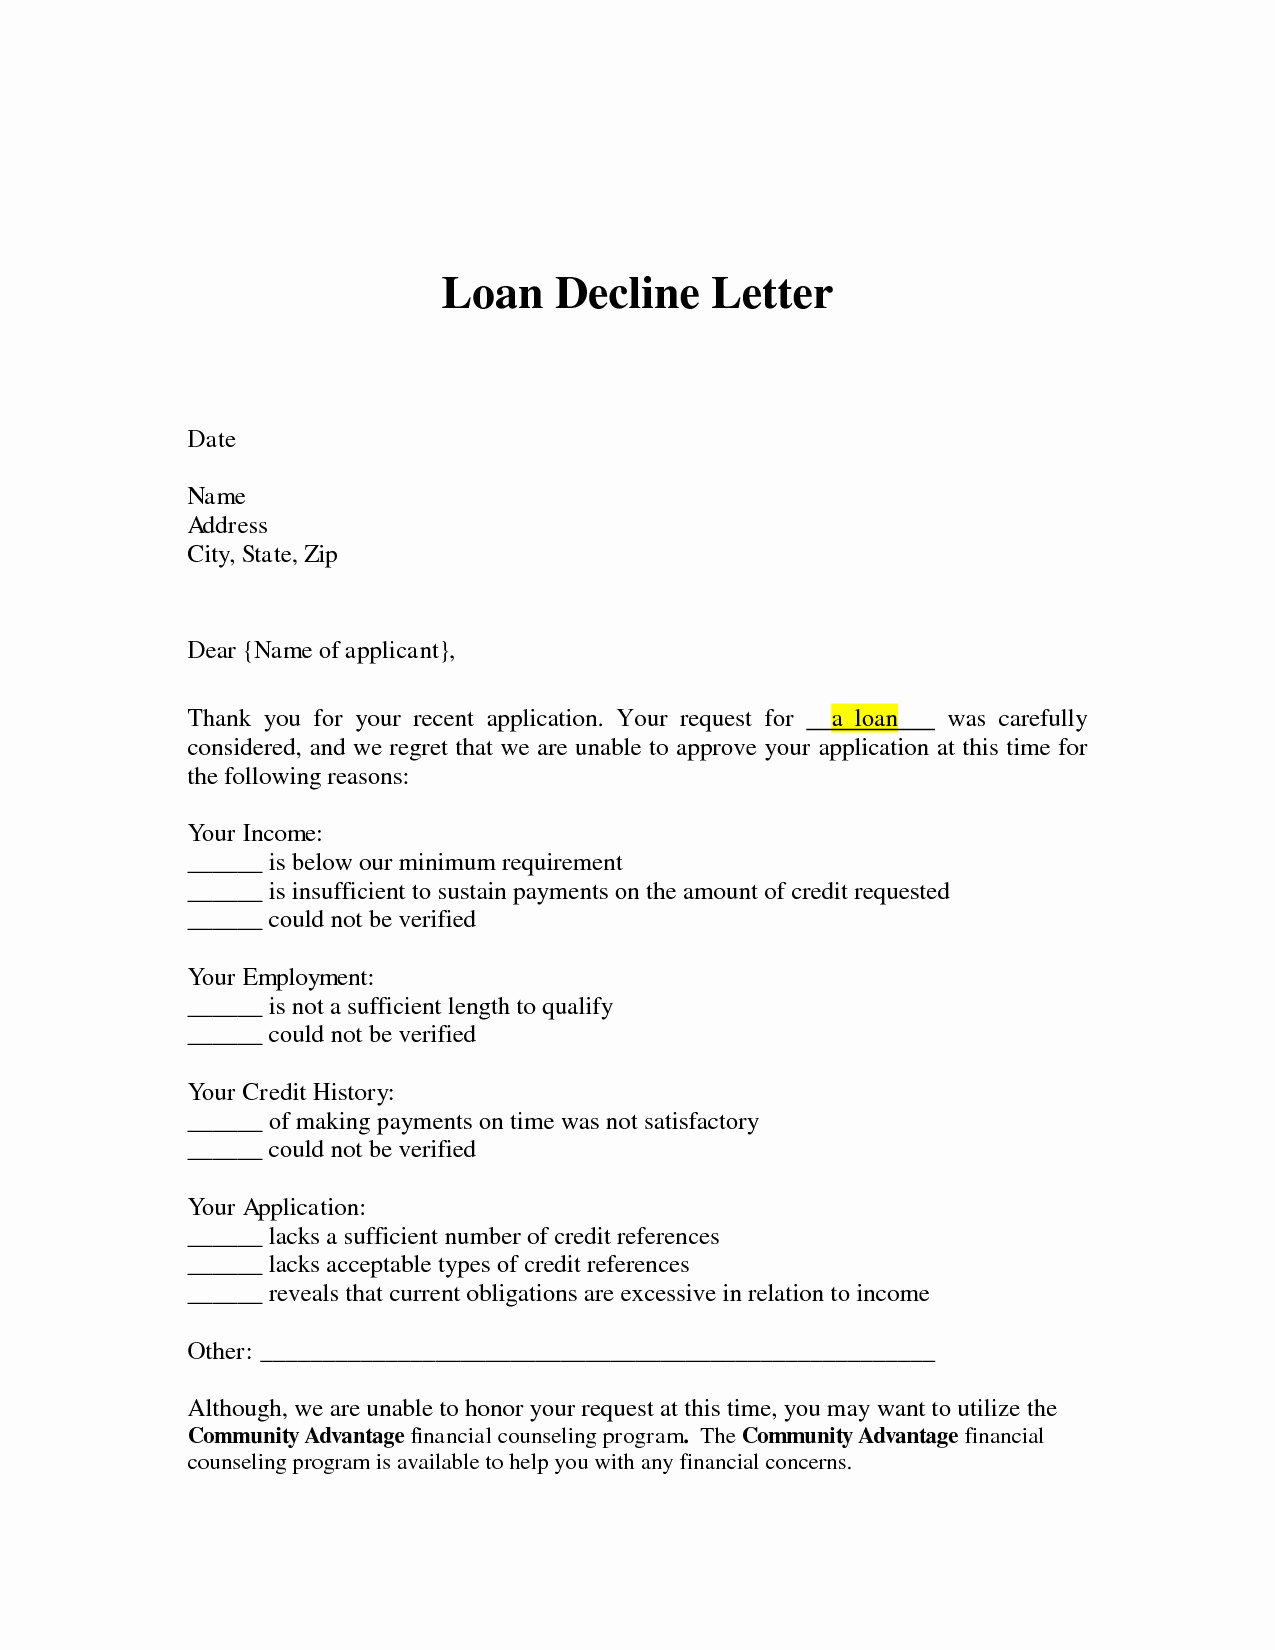 Refinance Letter Template Inspirational Loan Decline Letter Loan Denial Letter Arrives You Can